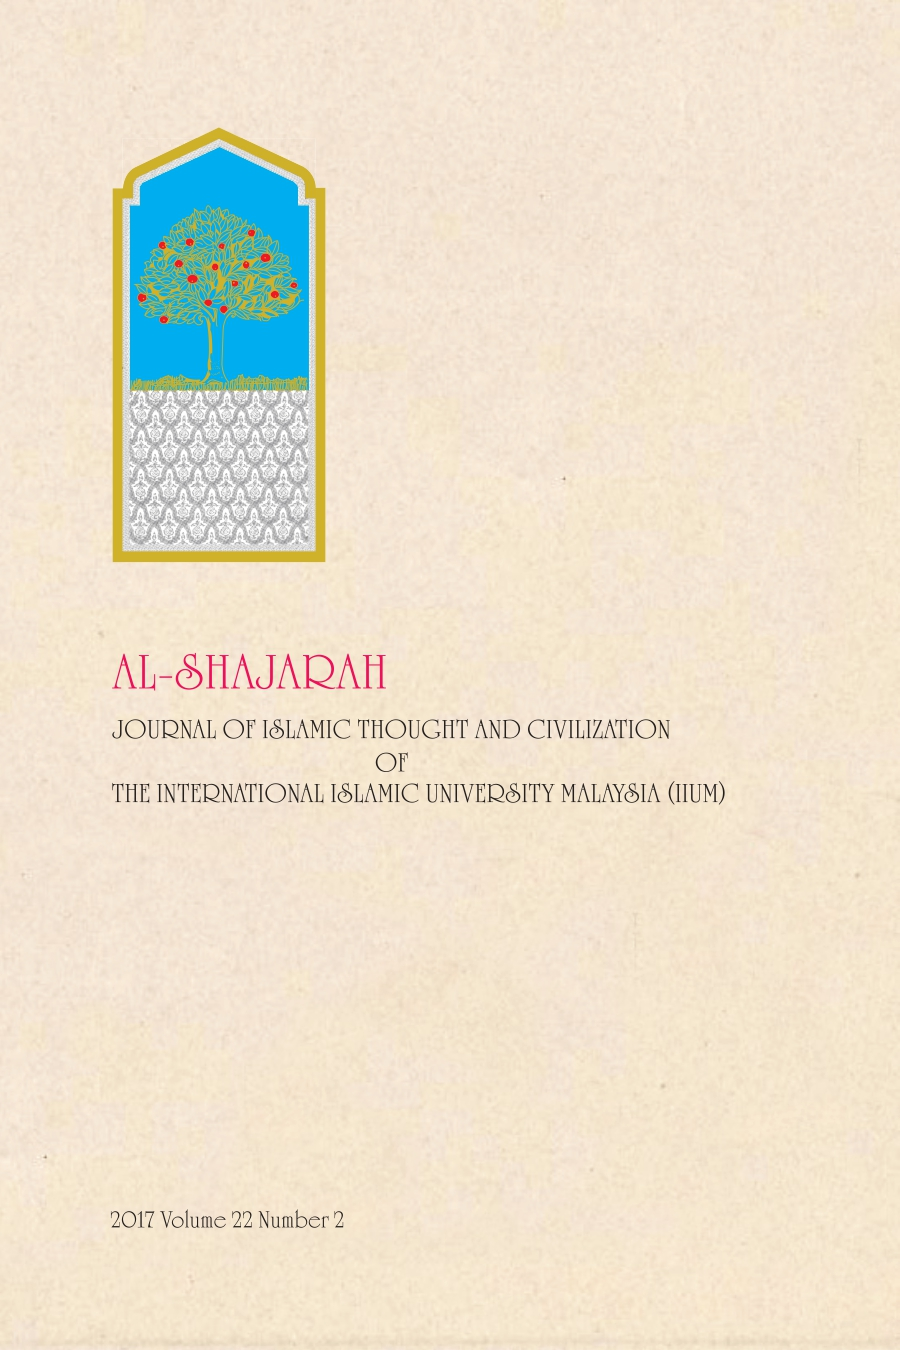 "Homam Altabaa, Spirituality in Modern Literature: Kahlil Gibran and the Spiritual Quest, ""Al-Shajarah"", The International Islamic University Malaysia (IIUM), Vol. 22, No. 2, 2017, pp. 215-236."